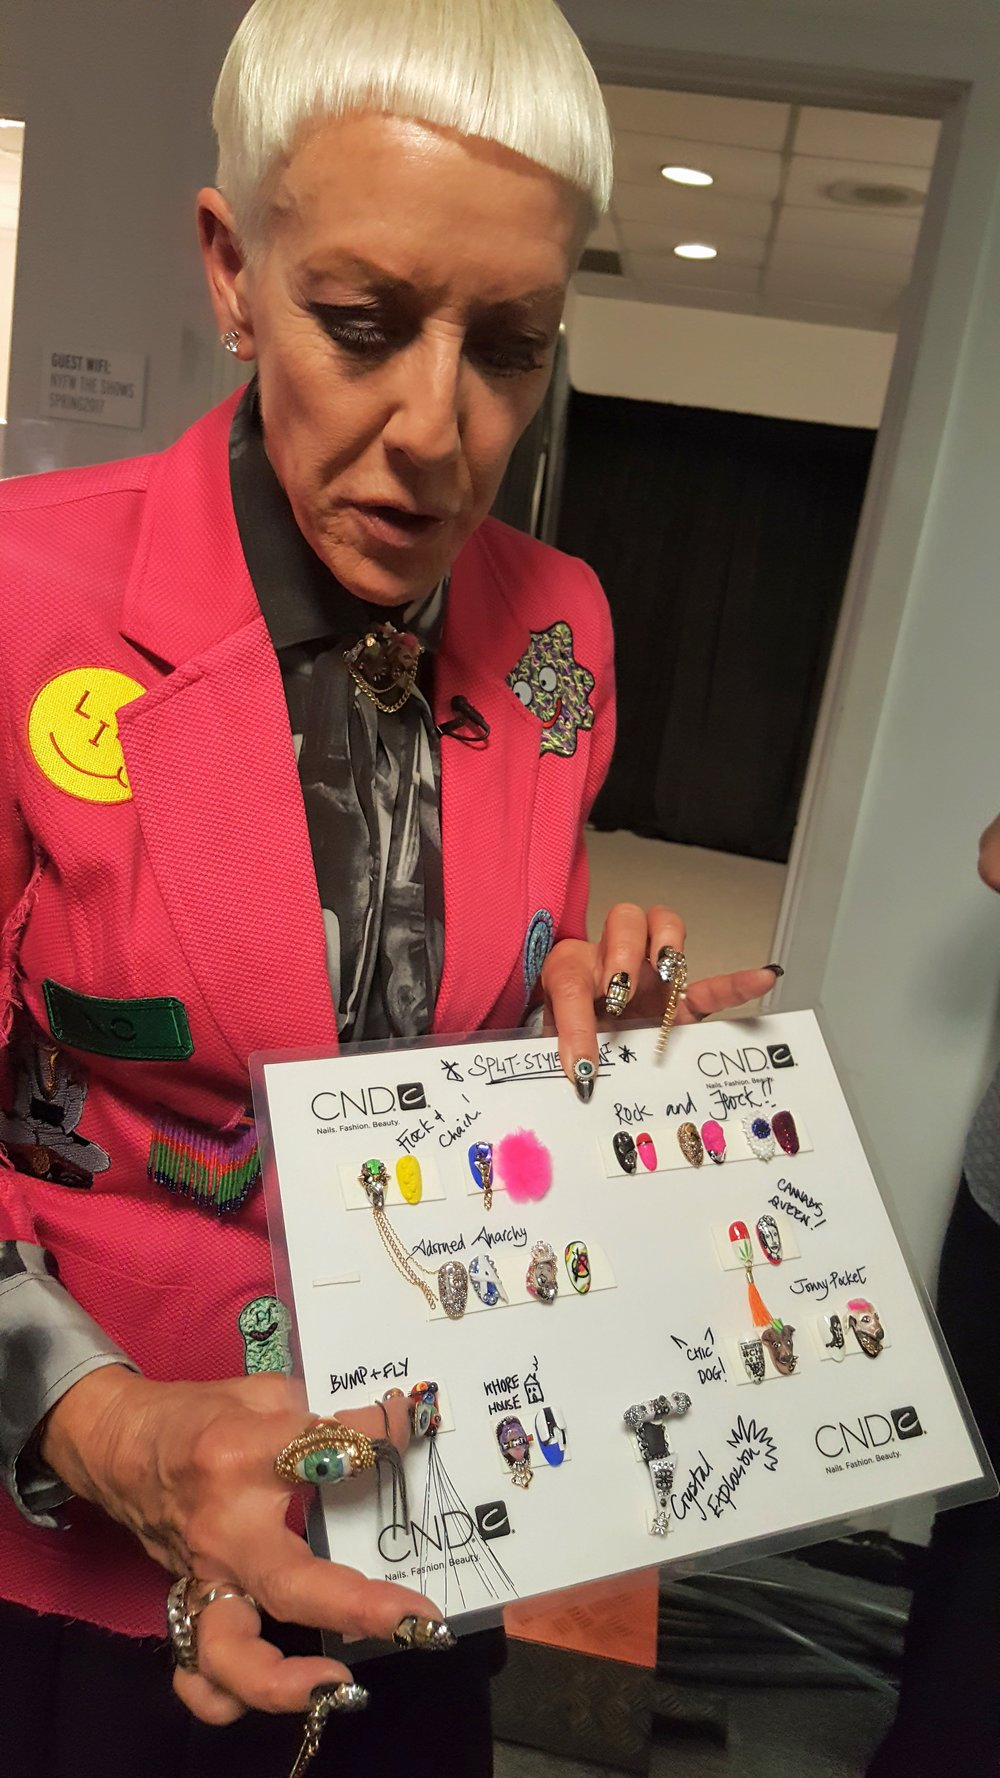 CND  blew minds with the manis for this collection. Here, co-founder, Jan Arnold, tells us about the vision behind the extreme nail bling (catch the video below). She was also too cool. Obsessed with the eye rings on her fingers!